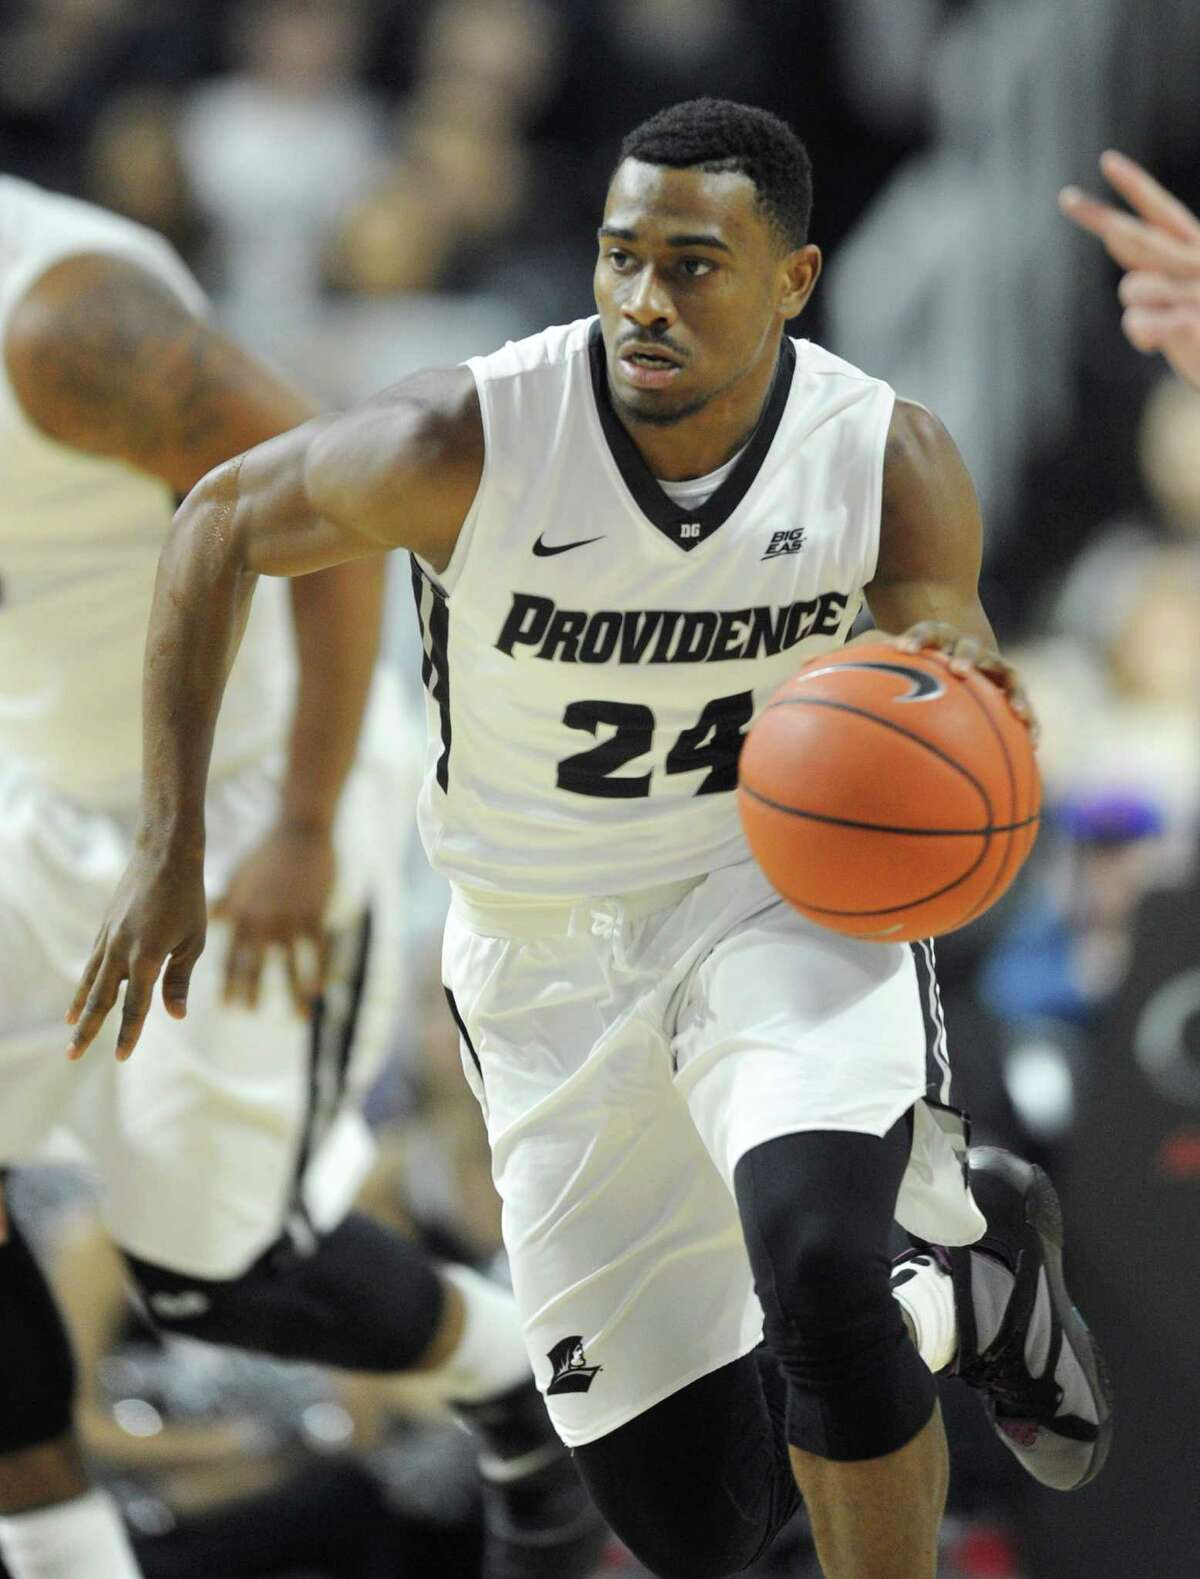 Four hot teamsProvidence The Friars are off to a 6-1 start and their only loss came to No. 3 Michigan State. Led by a player of the year favorite, guard Kris Dunn, Providence is a team making waves. They've entered the top 25 in both polls.